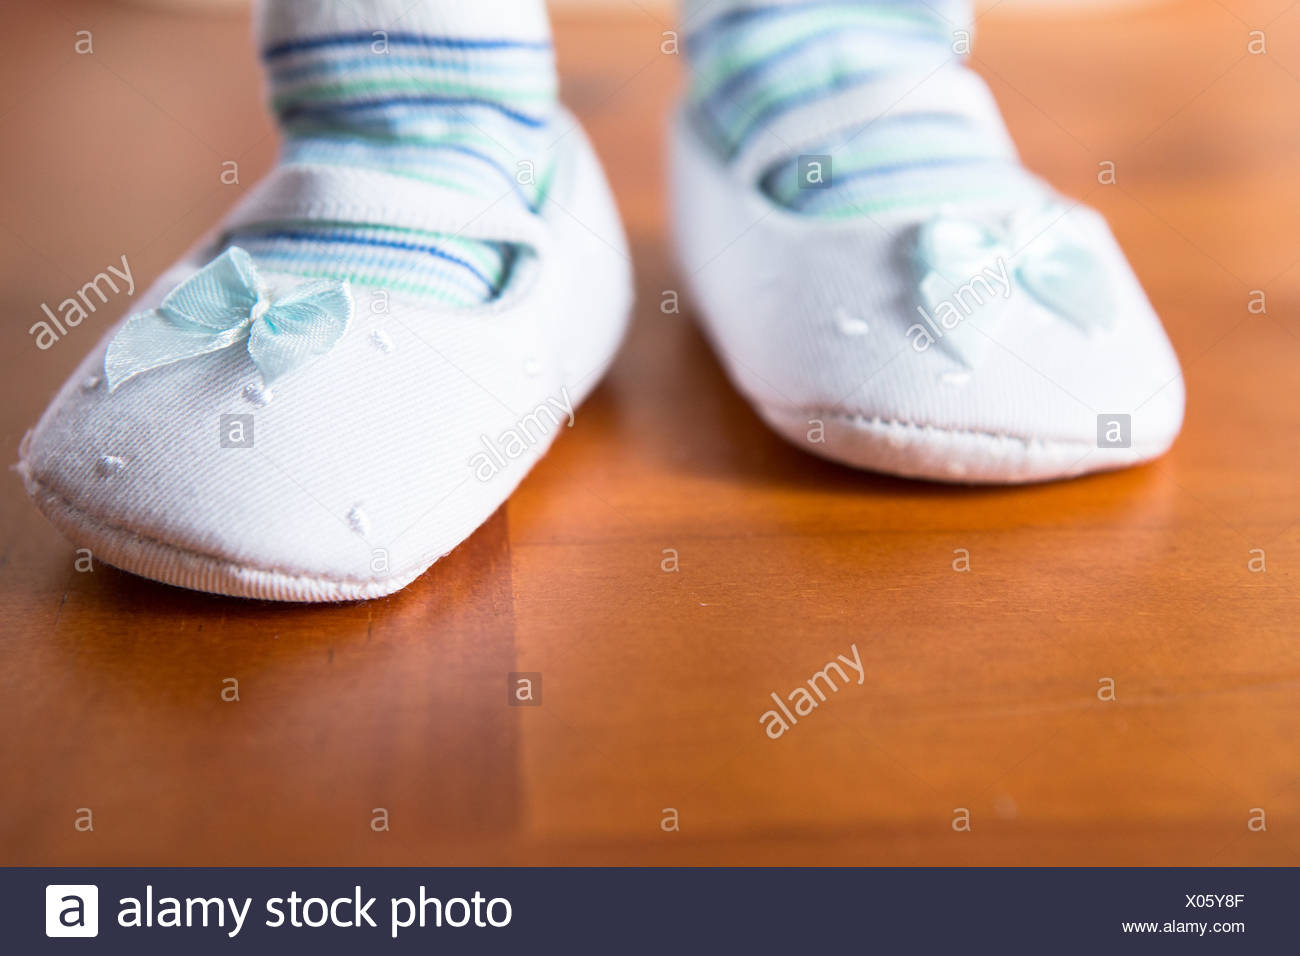 Baby in booties taking first step - Stock Image